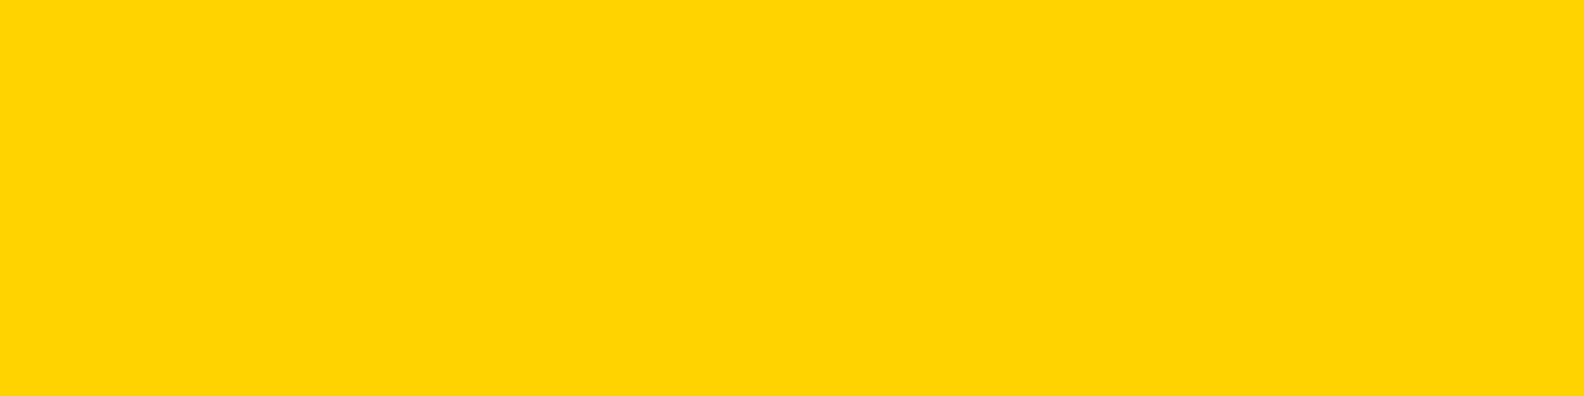 1584x396 Yellow NCS Solid Color Background